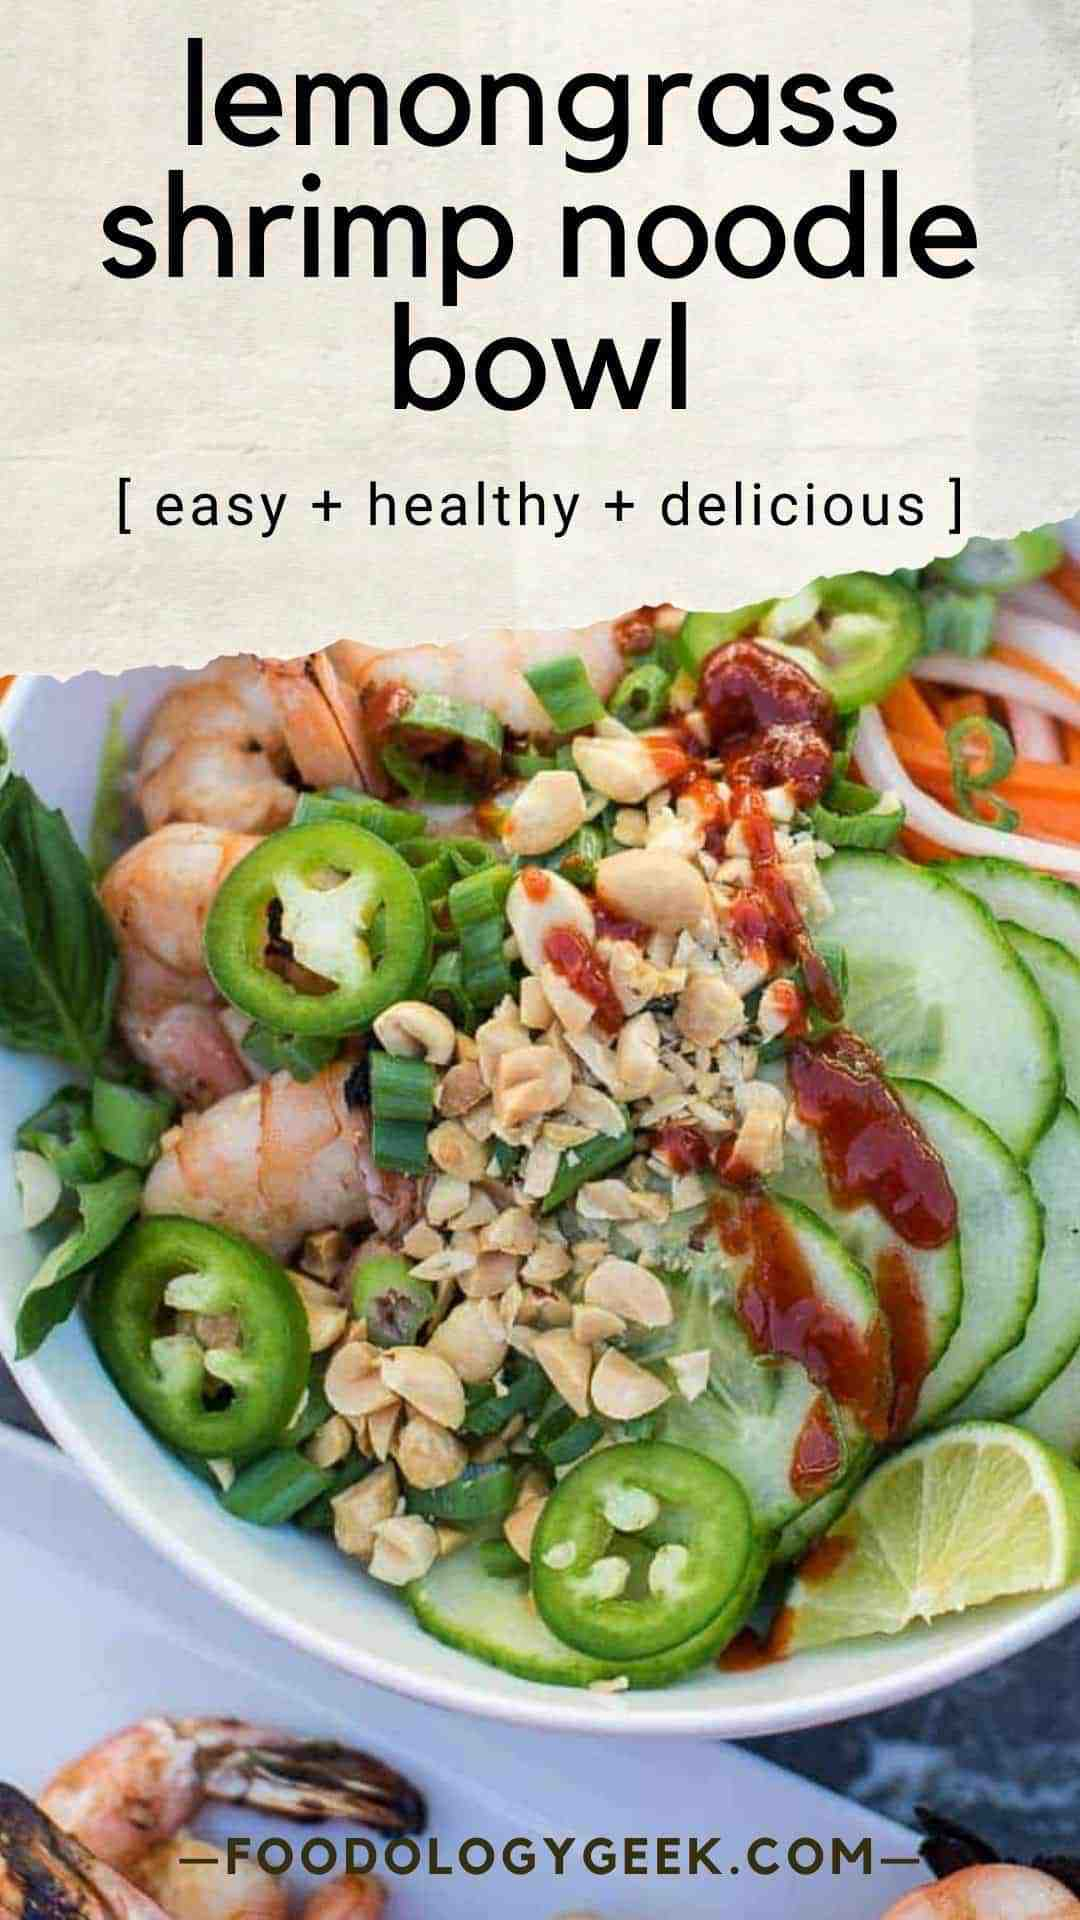 Healthy and easy to make ahead this lemongrass shrimp bowl 🍤recipe will be a favorite go to meal. Serve with rice noodles, veggies, and sriracha.